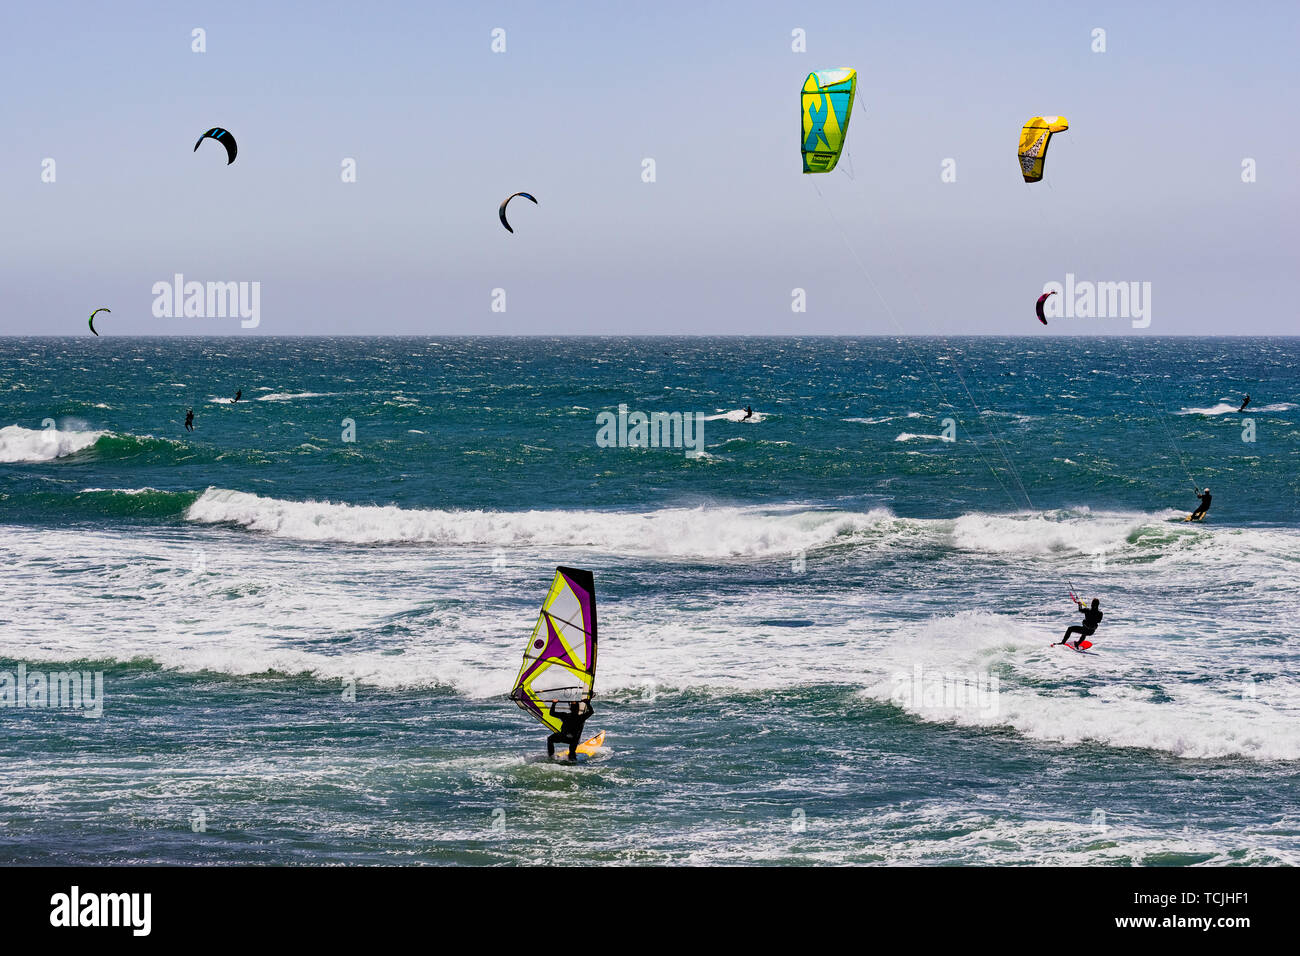 June 6, 2019 Davenport / CA / USA - People kite and wind surfing in the Pacific Ocean, near Santa Cruz, on a sunny and warm day - Stock Image